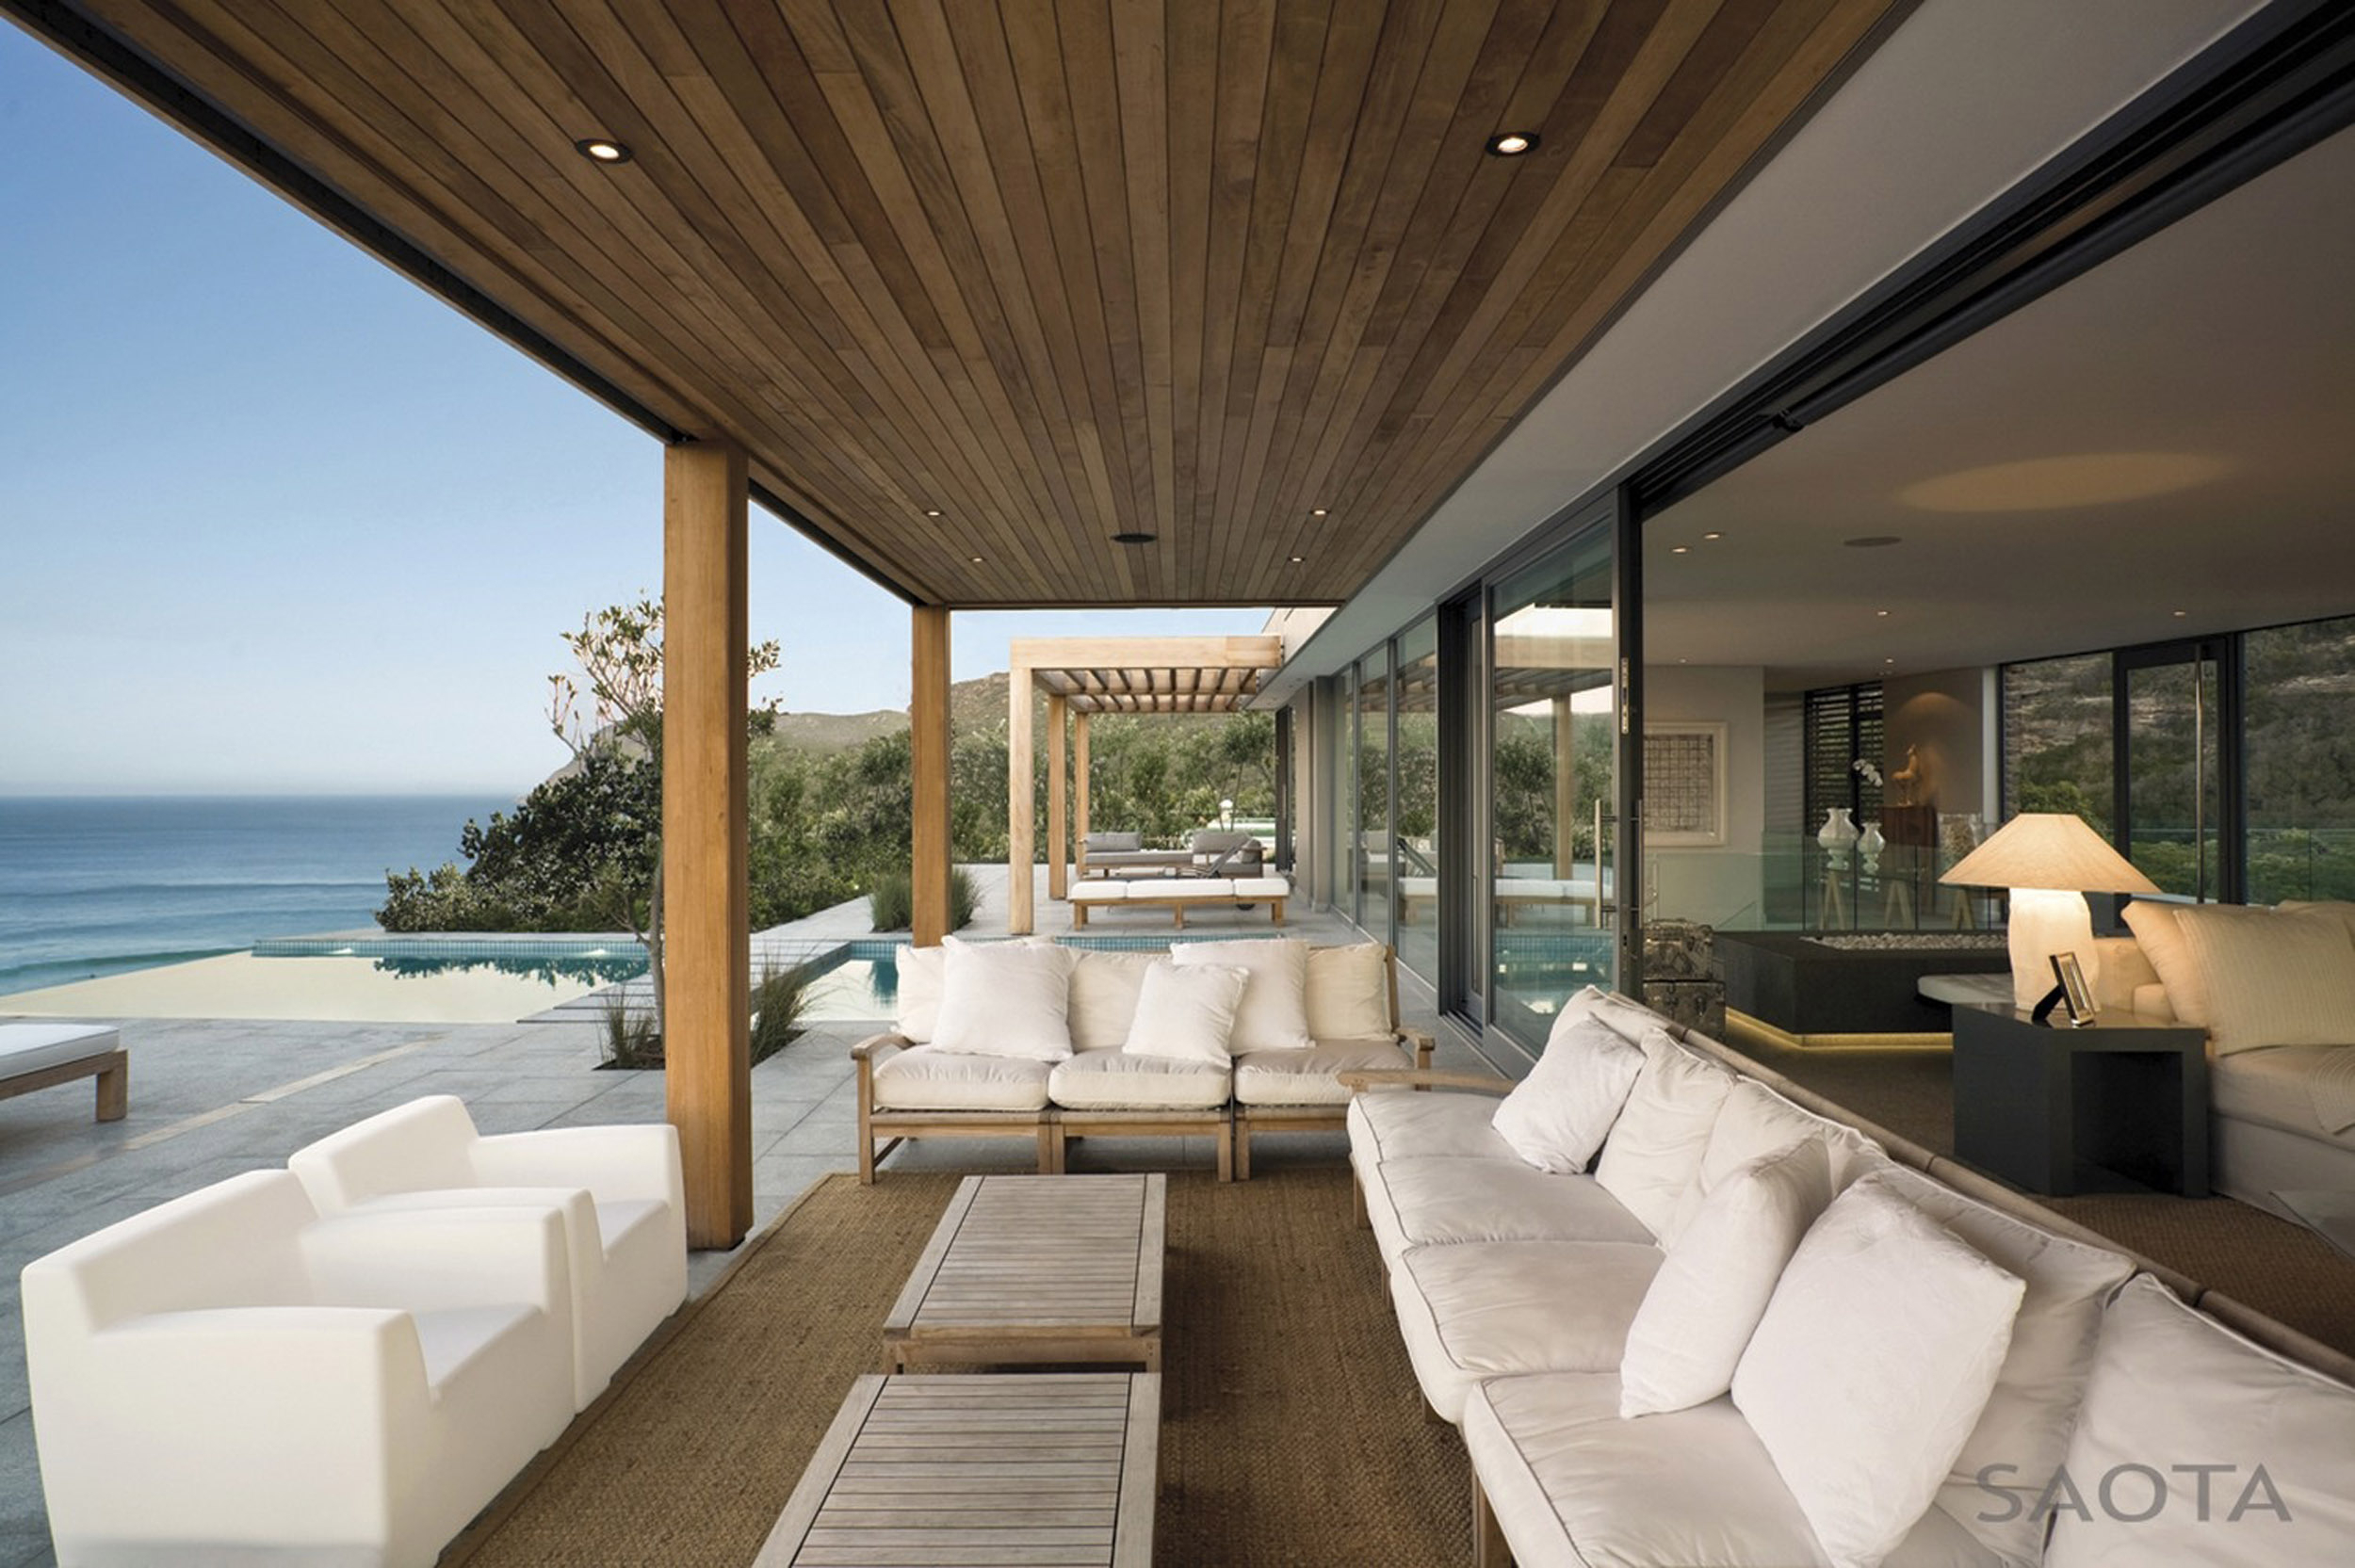 Outdoor Livig Space With White Sofa Set And Wooden Ceiling With Panoramic Ocean View From Plett By Saota Architect Indoor Outdoor Living Spaces (View 8 of 20)